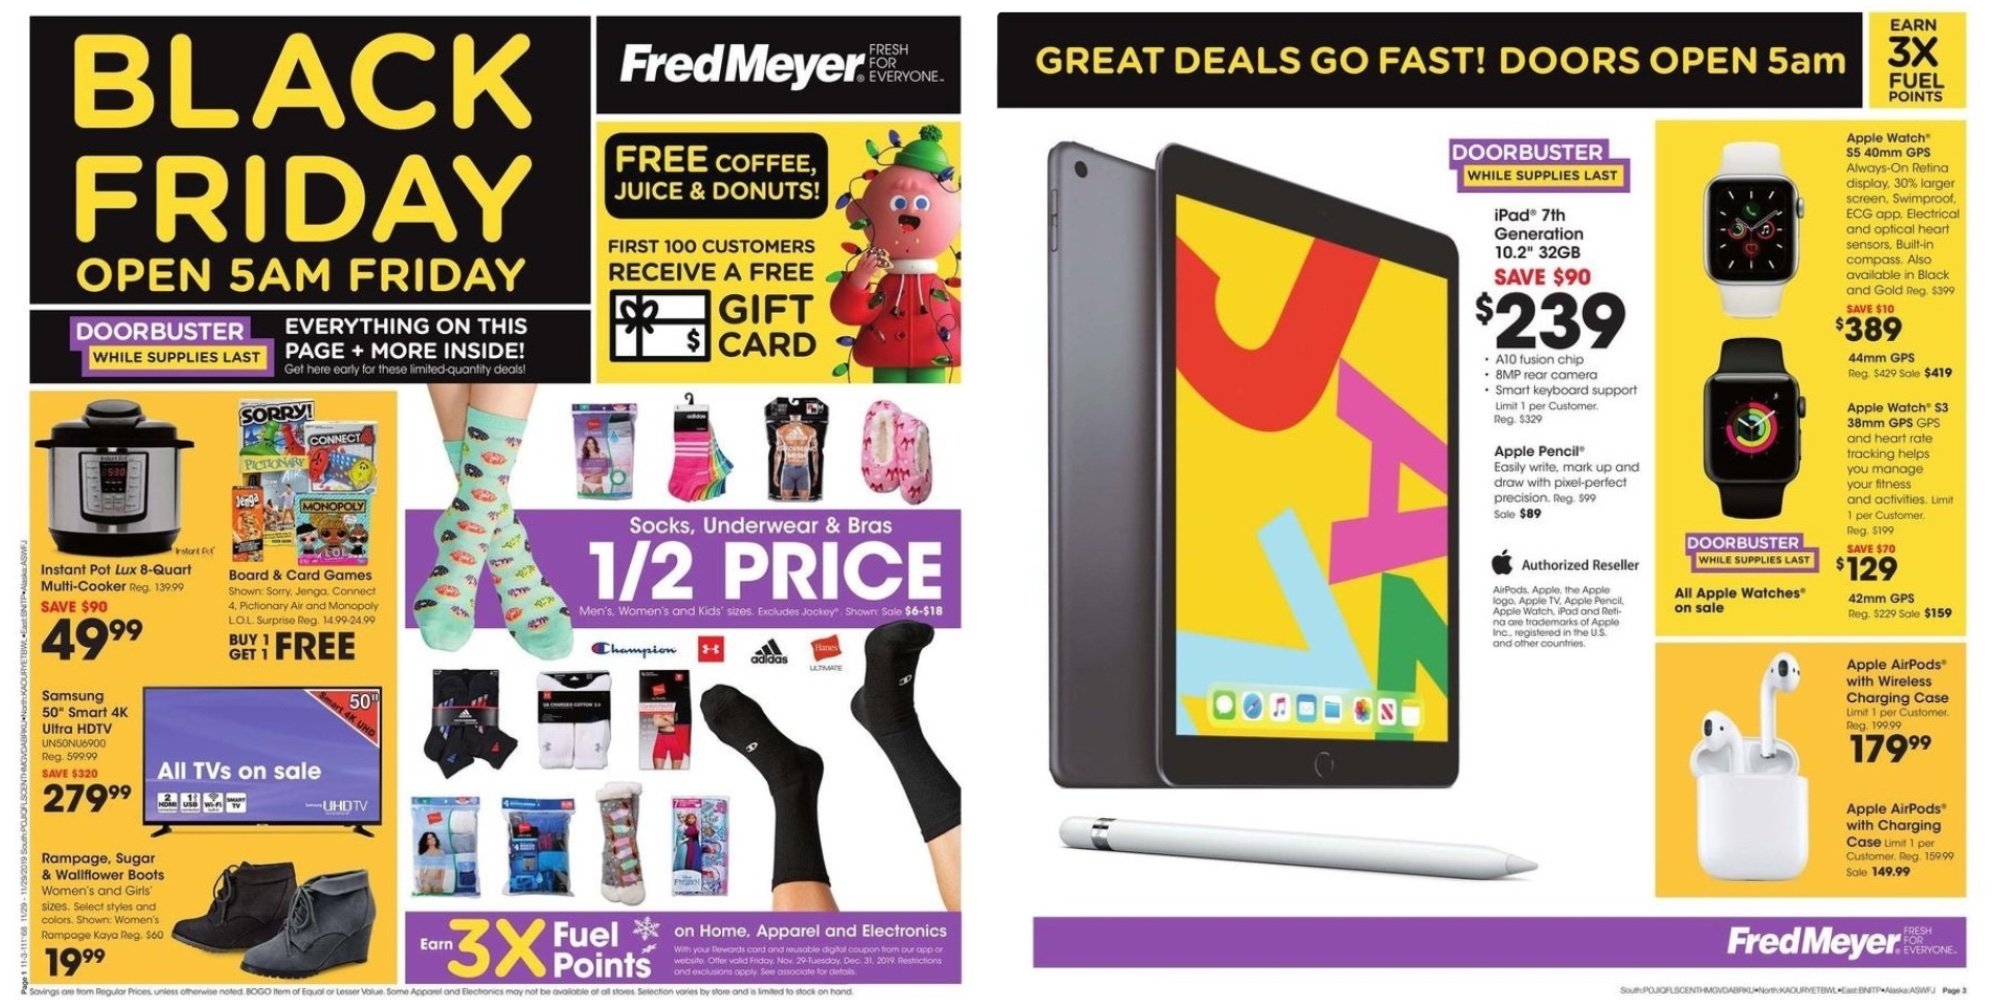 Best Of 9to5toys Walmart Black Friday Ad 16 Inch Macbook Pro 437 Off Airpods Pro 235 More 9to5toys